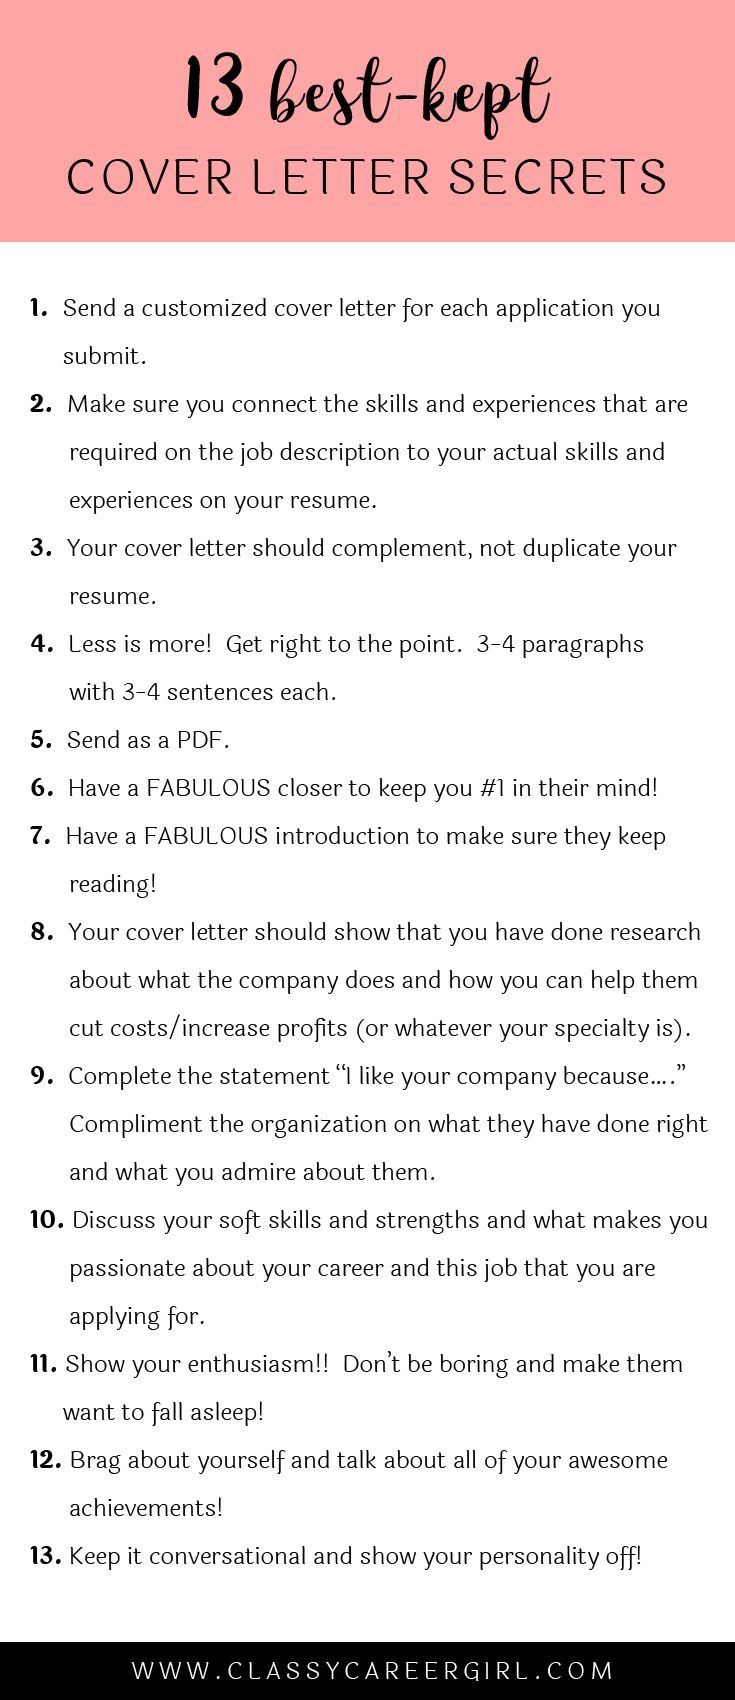 72 best cover letter tips images on pinterest interview